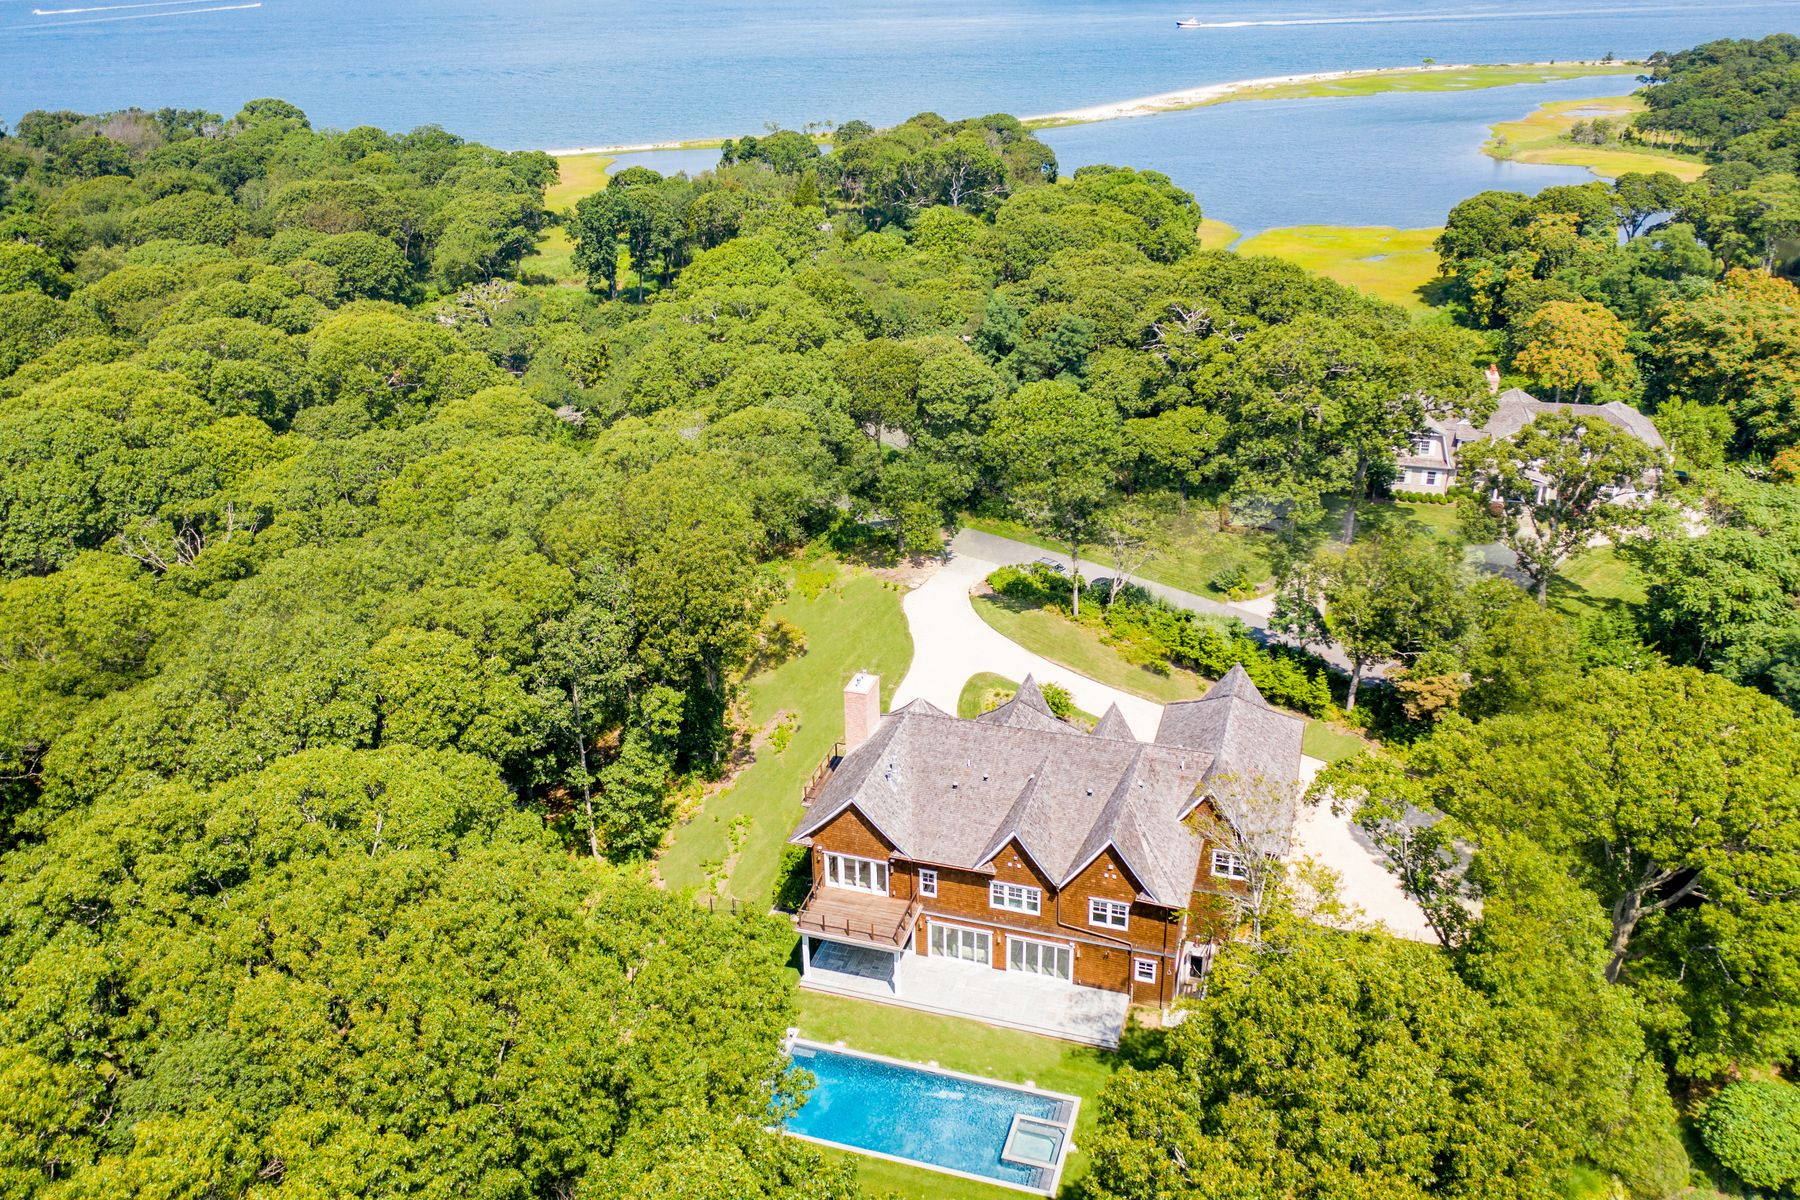 Single Family Homes for Sale at New Construction Across From Bay 9 Seaponack Drive Sag Harbor, New York 11963 United States